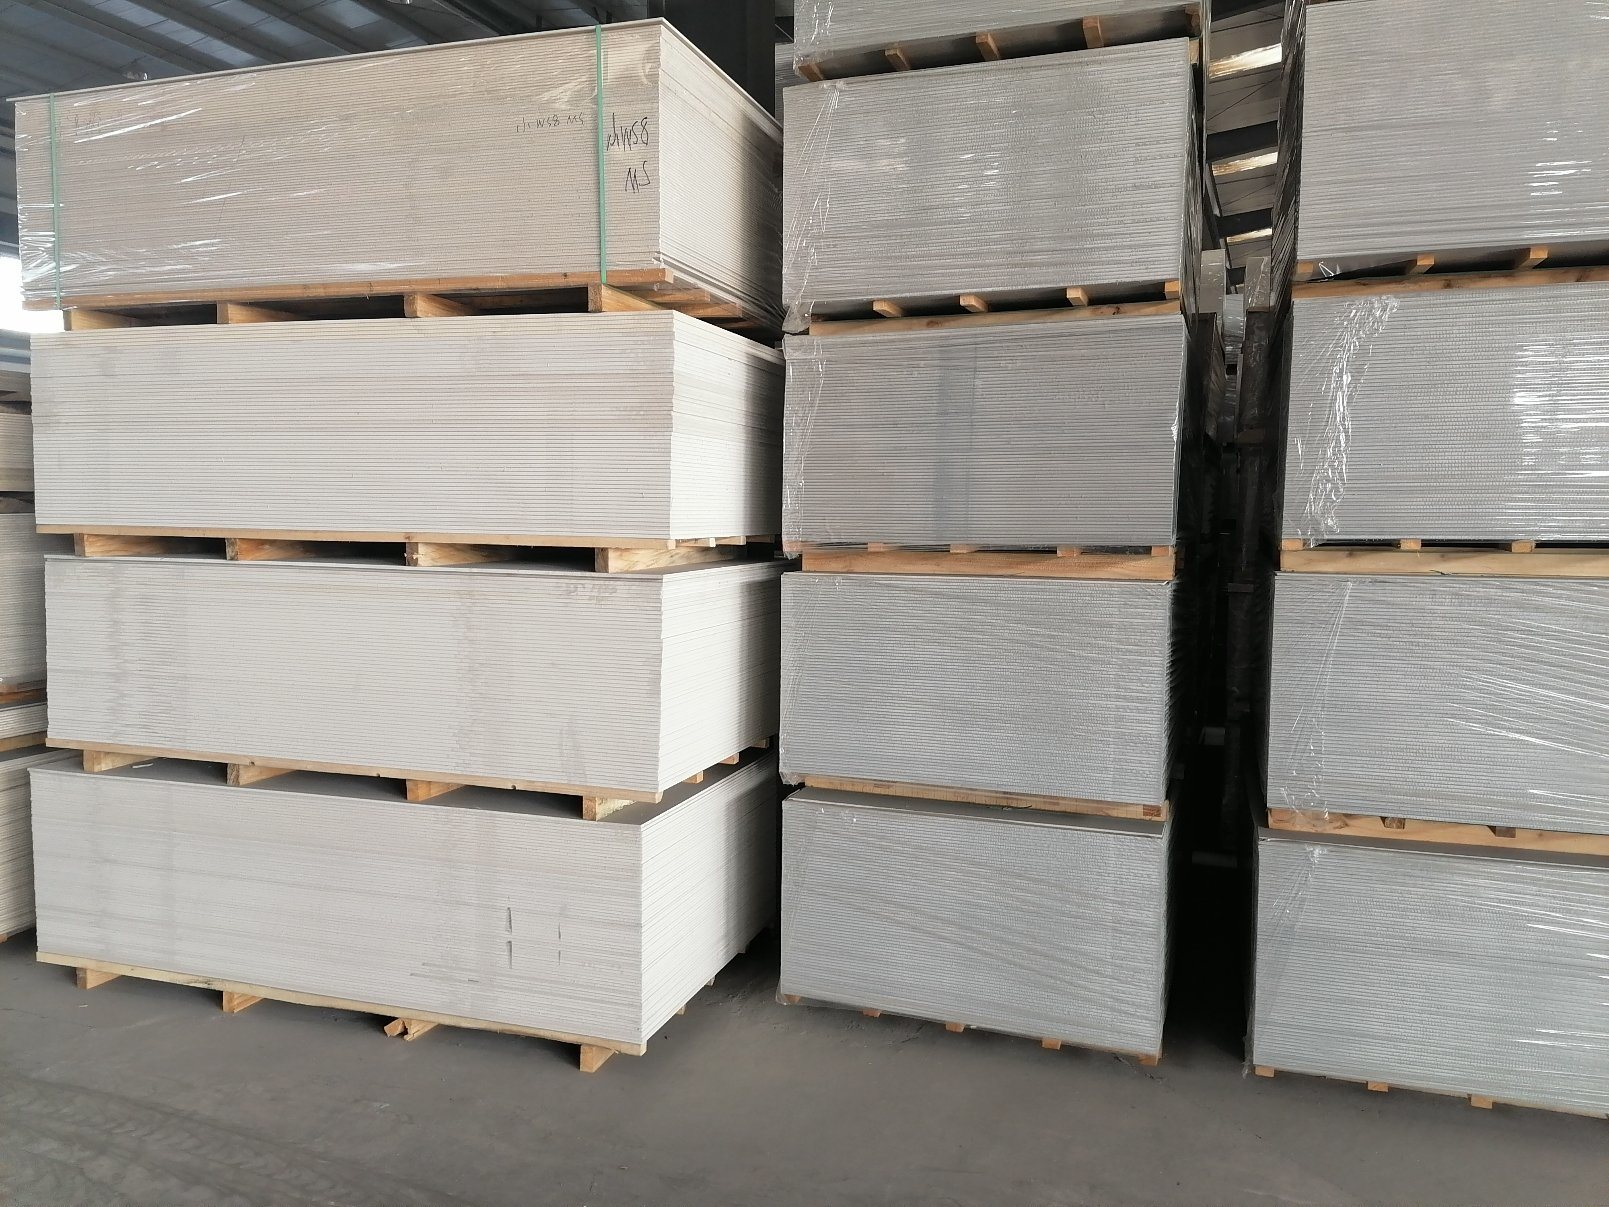 China Fiber Cement Calcium Silicate Sheet Light Weight 100 Non Asbestos High Strength Fireproof Waterproof Partition Flloring Loft Prefab Steel Structure Houses Photos Pictures Made In China Com